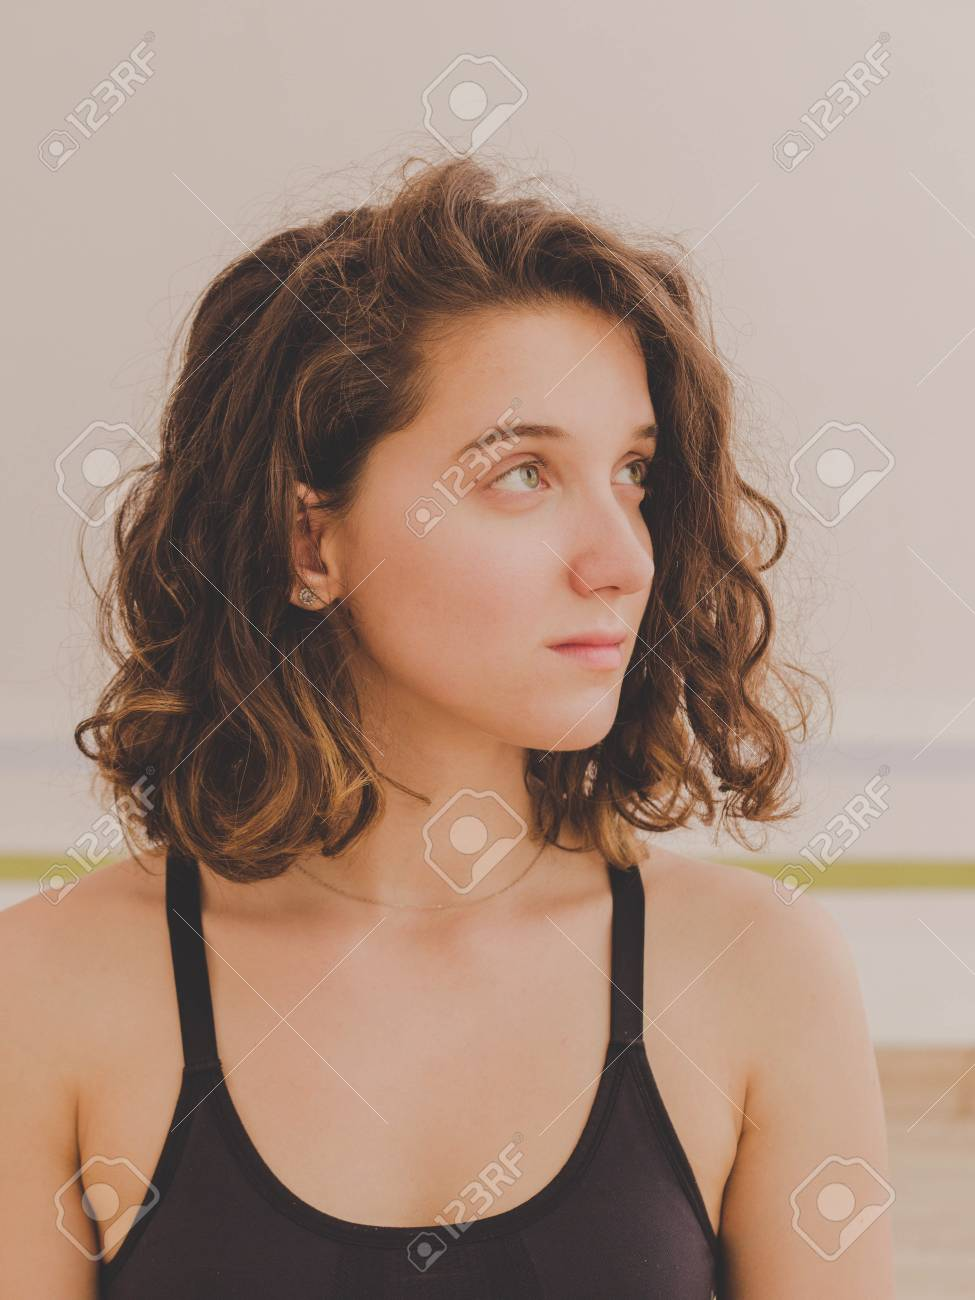 Portrait Of Young Pretty Yoga Girl With Short Curly Hair In